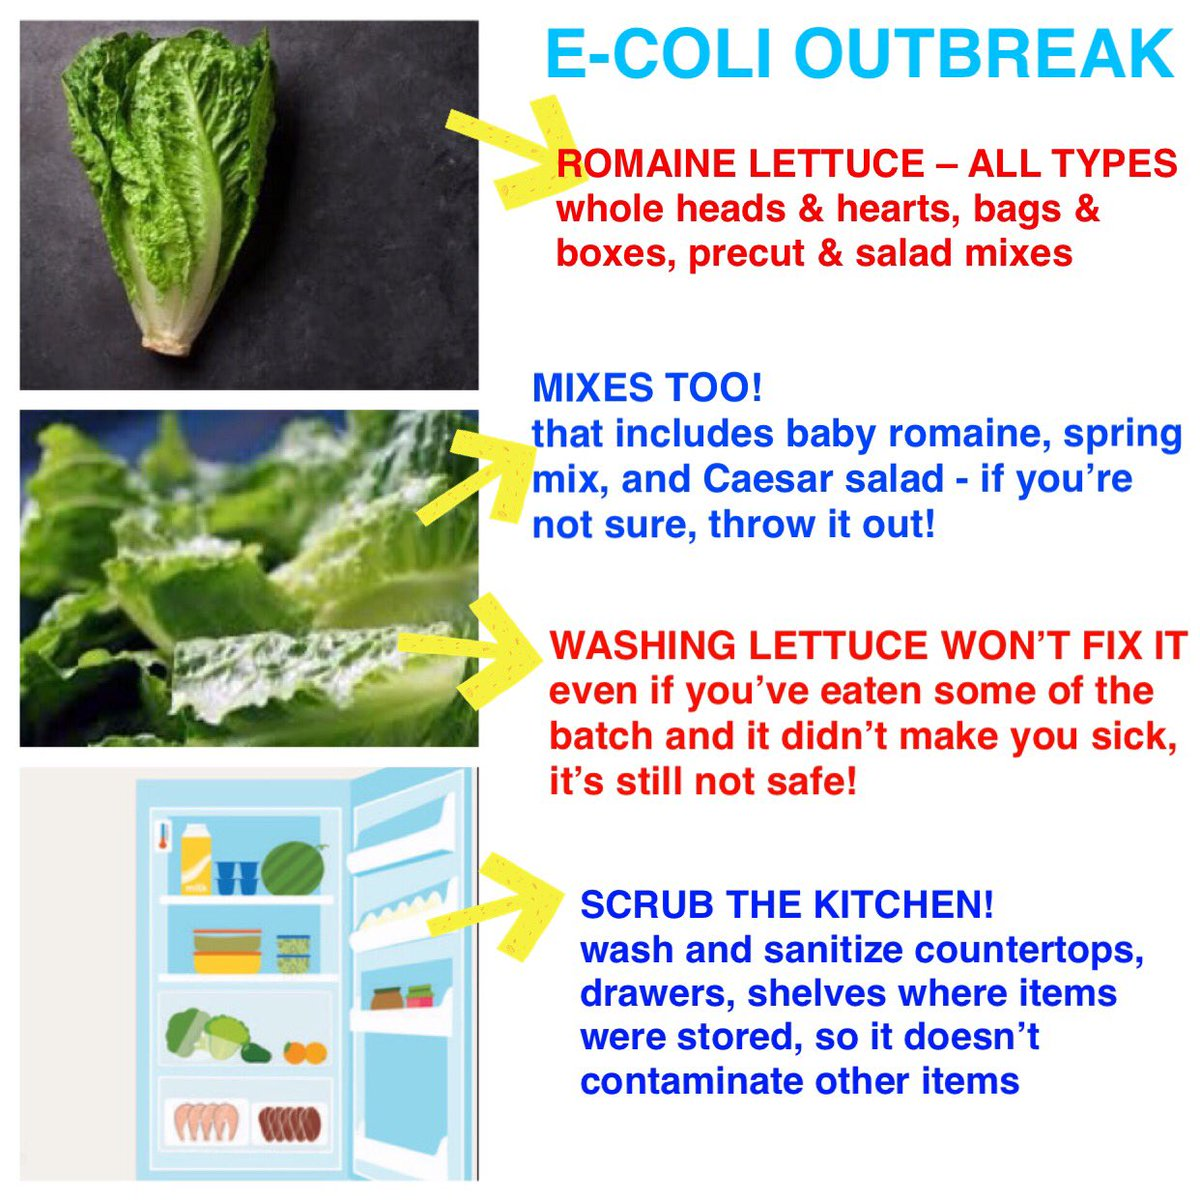 Forum on this topic: How Can I Protect Myself from E.coli, how-can-i-protect-myself-from-e-coli/